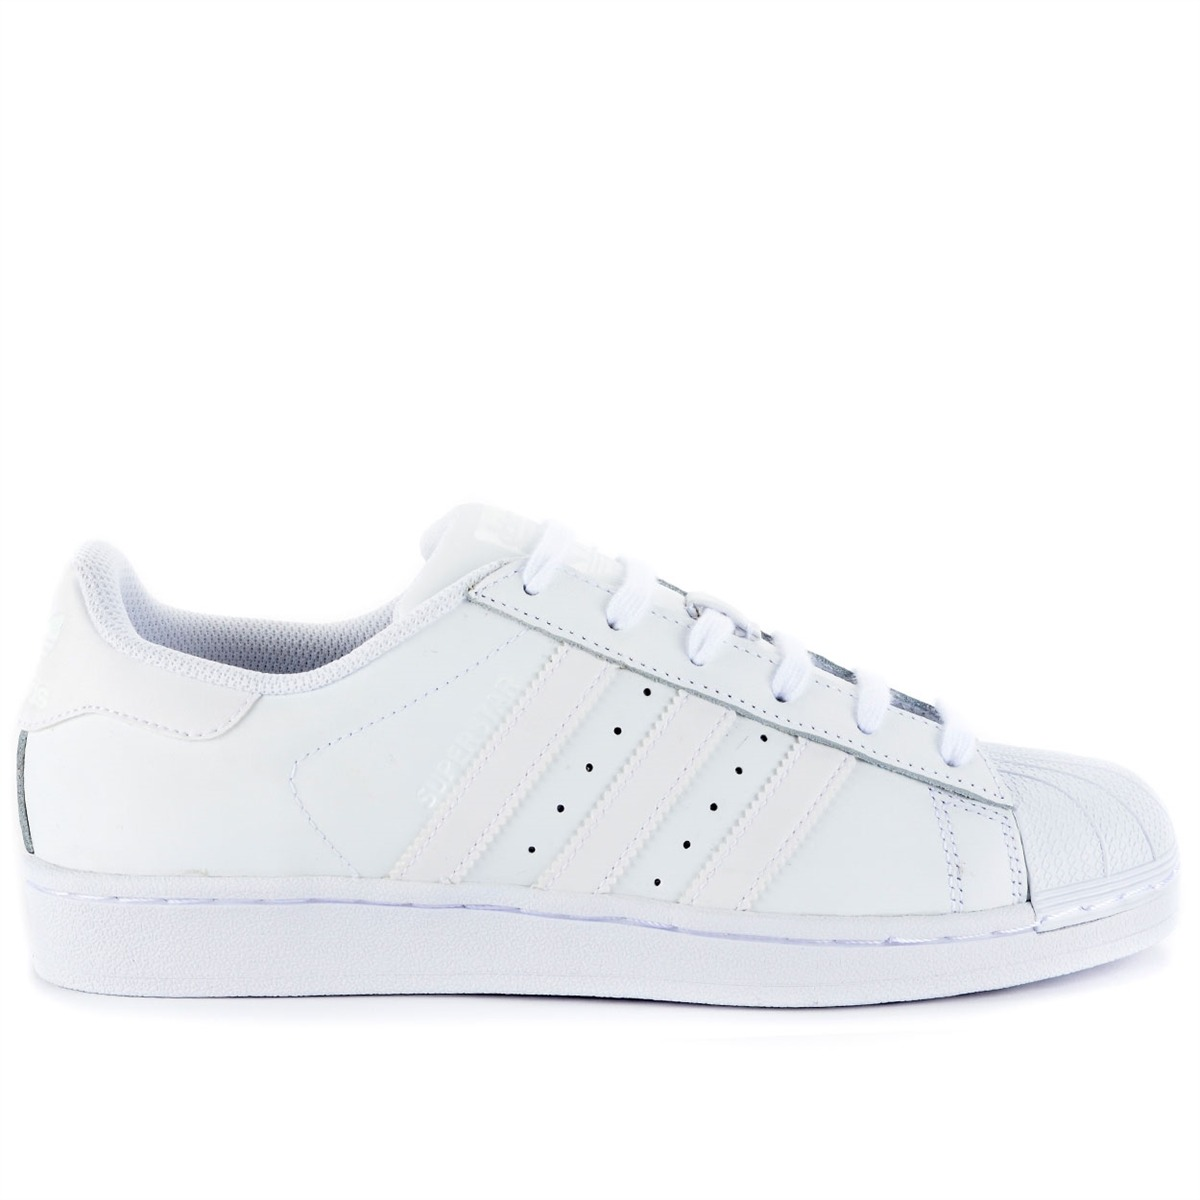 Adidas Originals Superstar Foundation White/Green BY3715